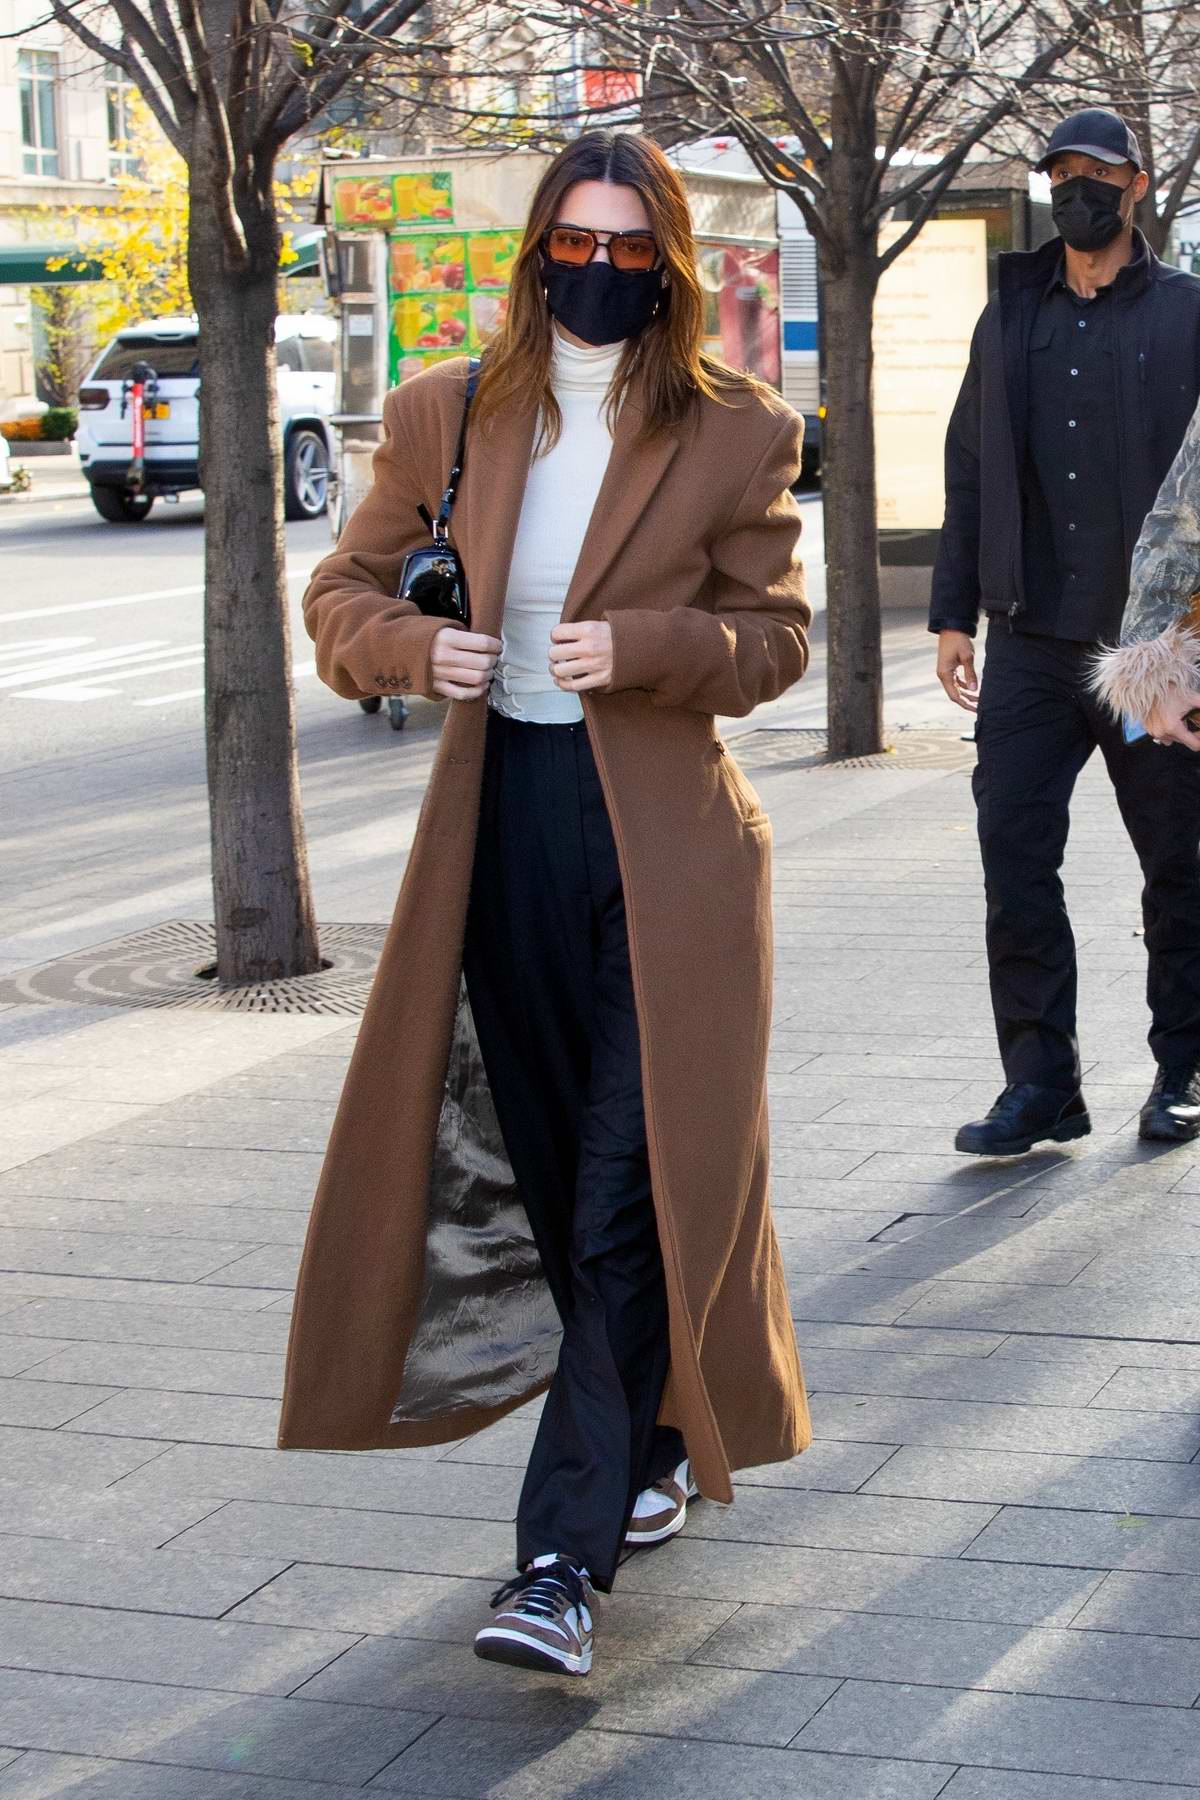 Kendall Jenner looks chic in a beige overcoat as she grabs lunch with Bella Hadid in New York City